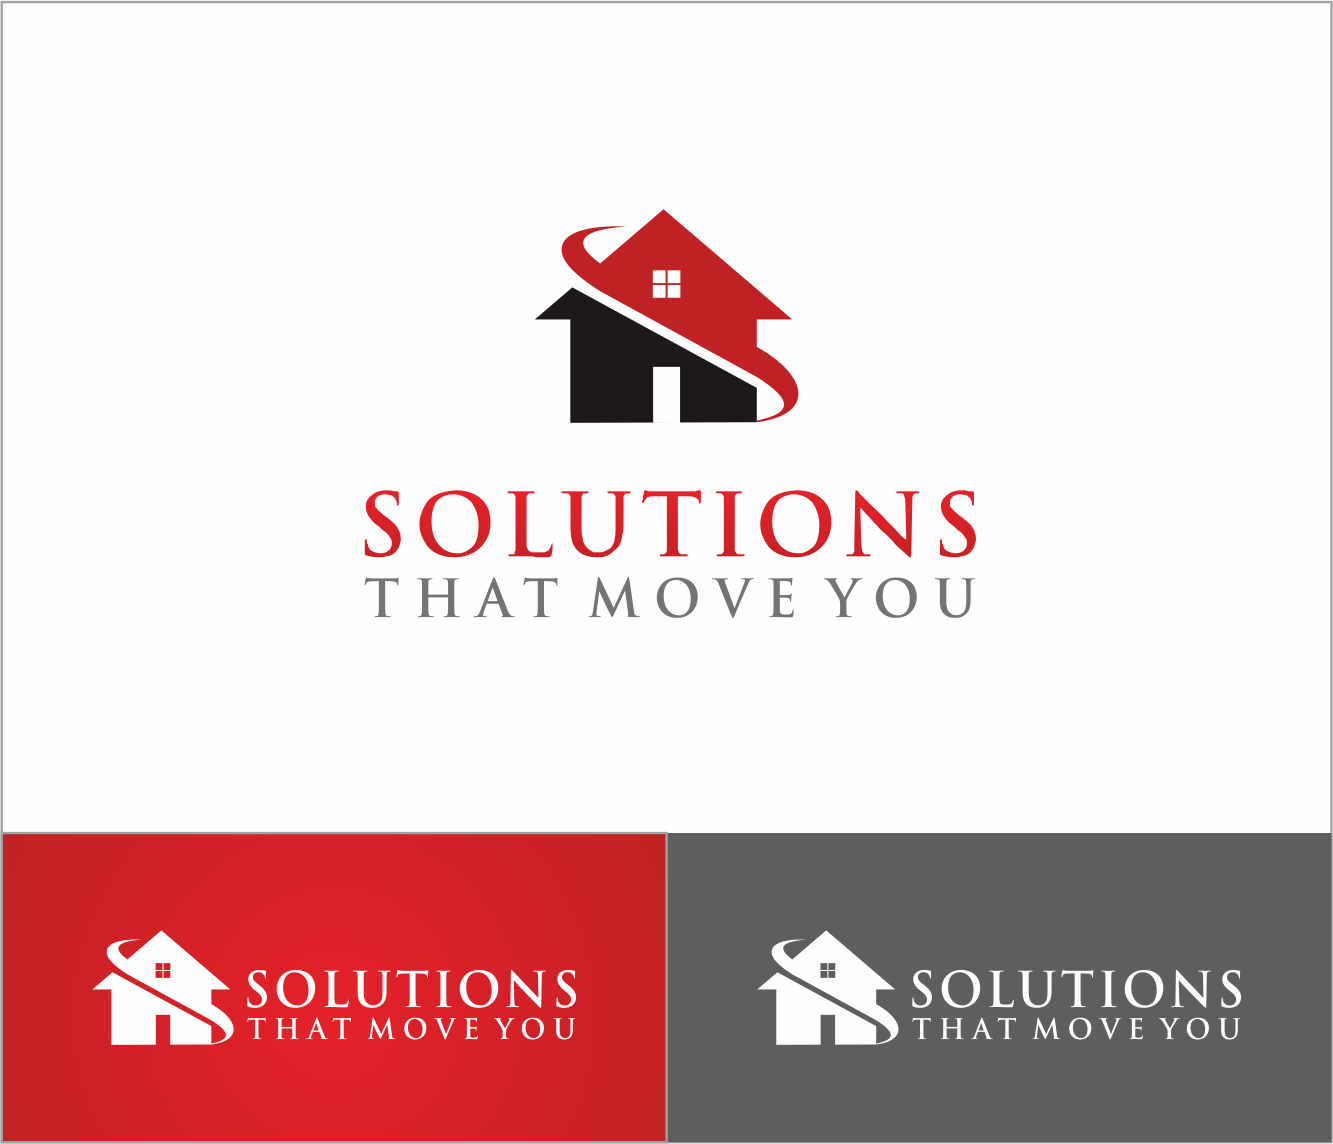 Logo Design by Armada Jamaluddin - Entry No. 53 in the Logo Design Contest Imaginative Logo Design for Solutions That Move You.